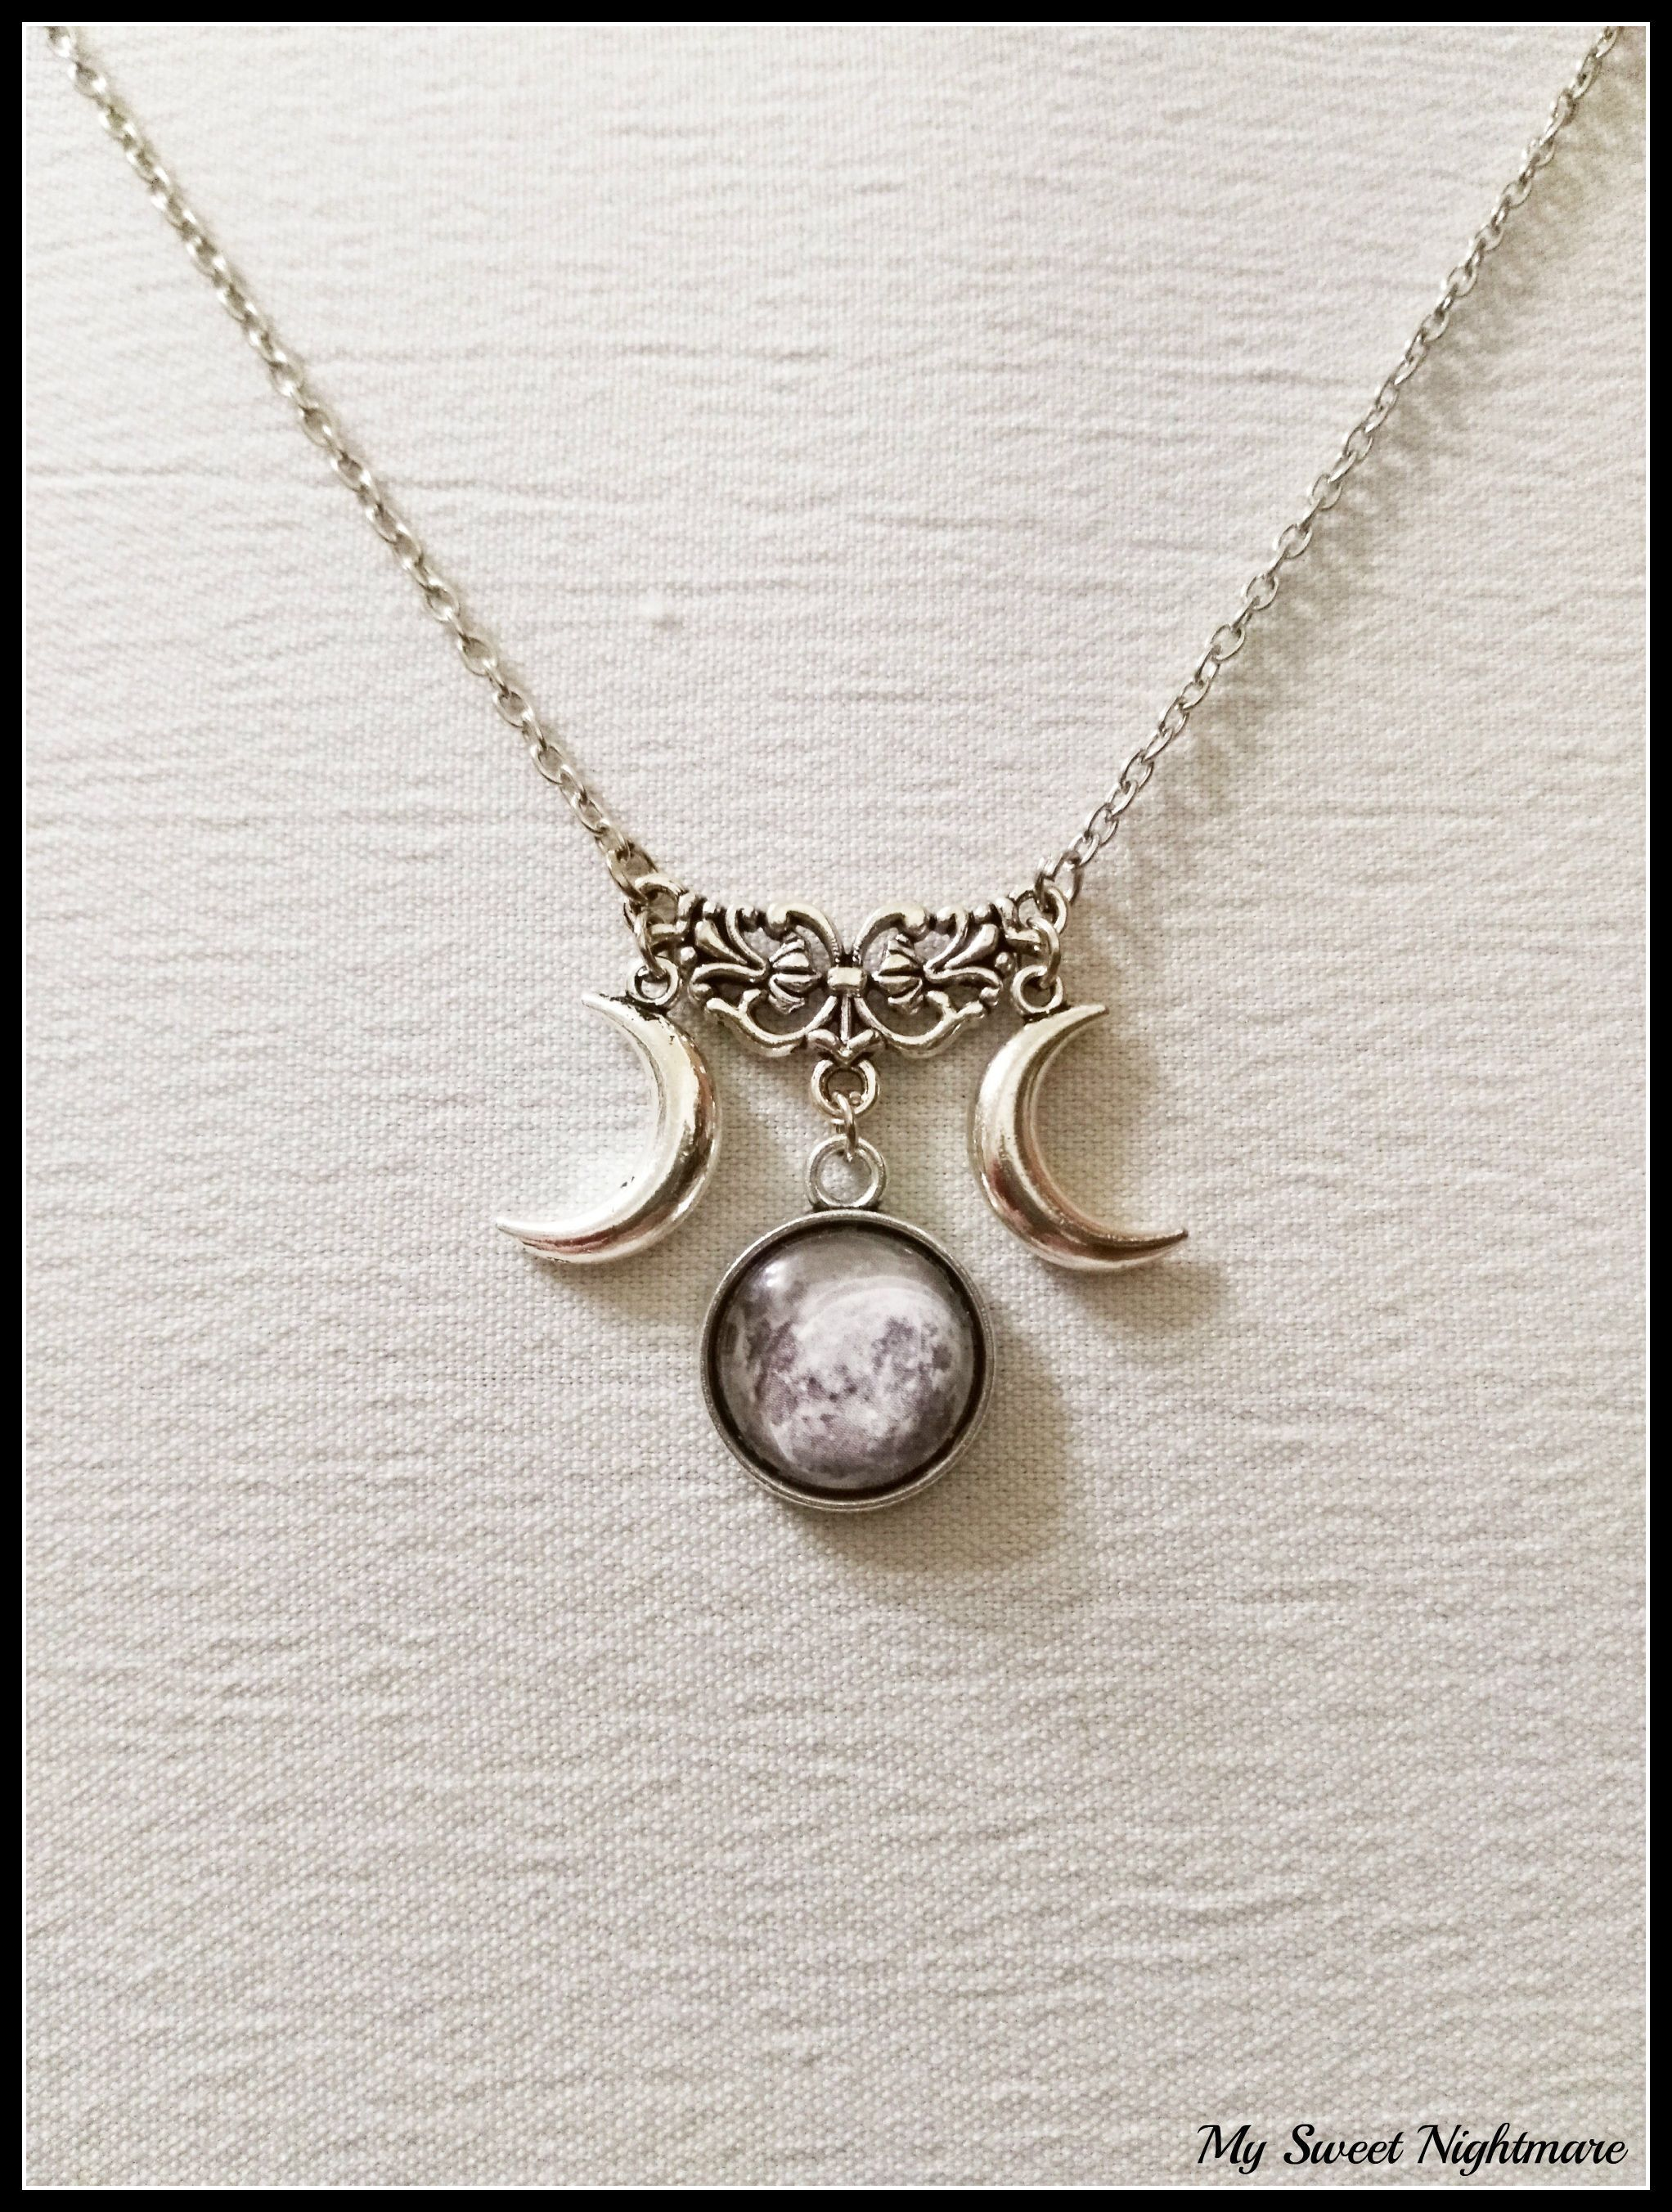 magic locket moon from pendant necklace triple goddess choker glass pentagram pagan wiccan product photo memories frame pentacle jewelry